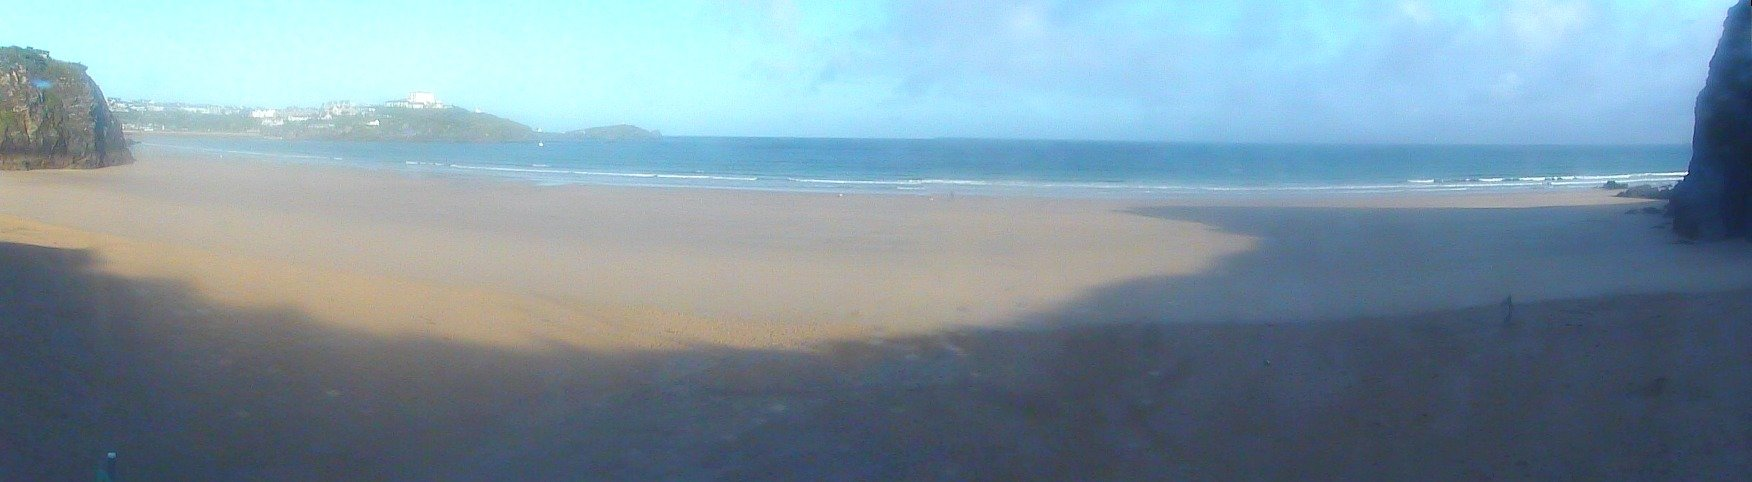 Webcam mais recente para Newquay - Tolcarne Wedge